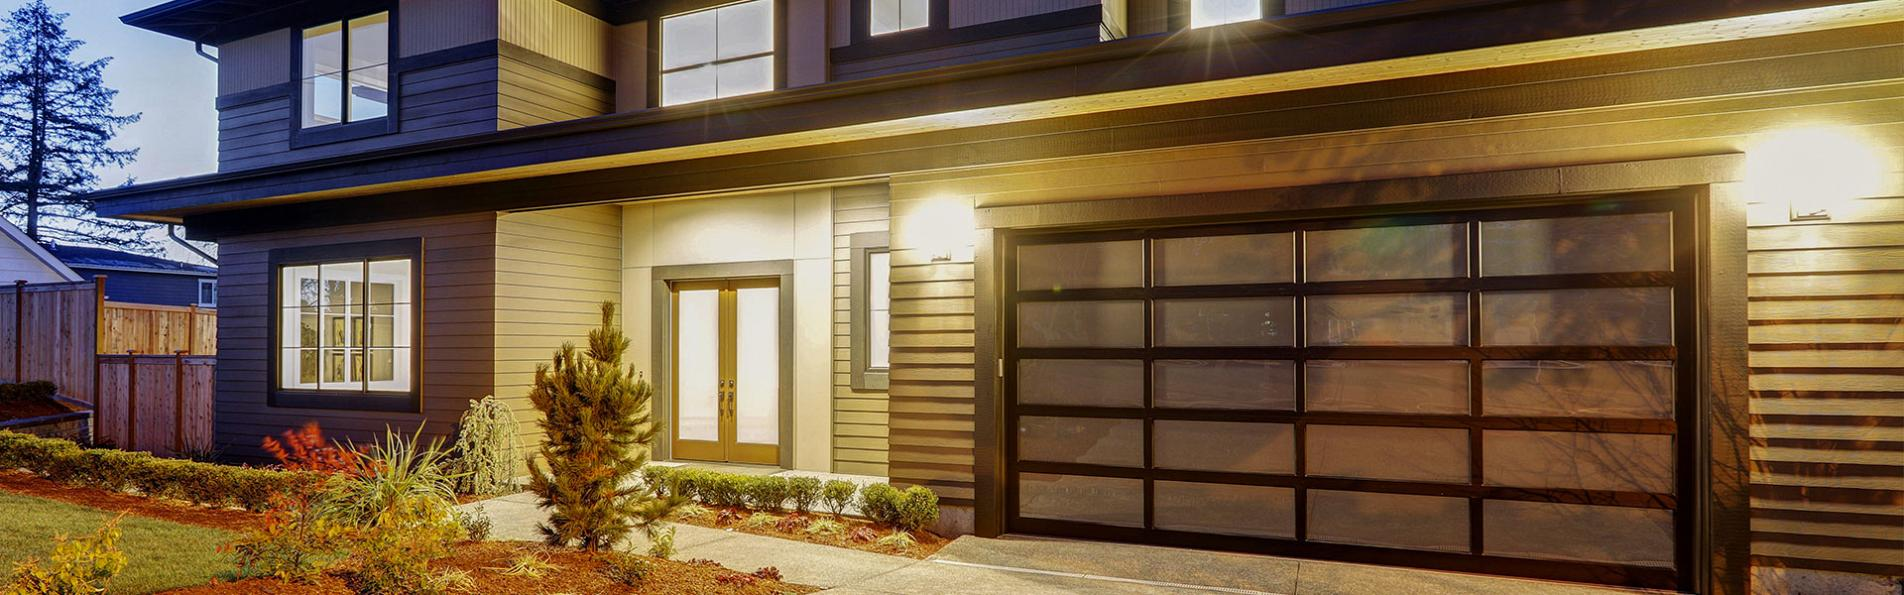 United Garage Doors League City, TX 281-975-0583